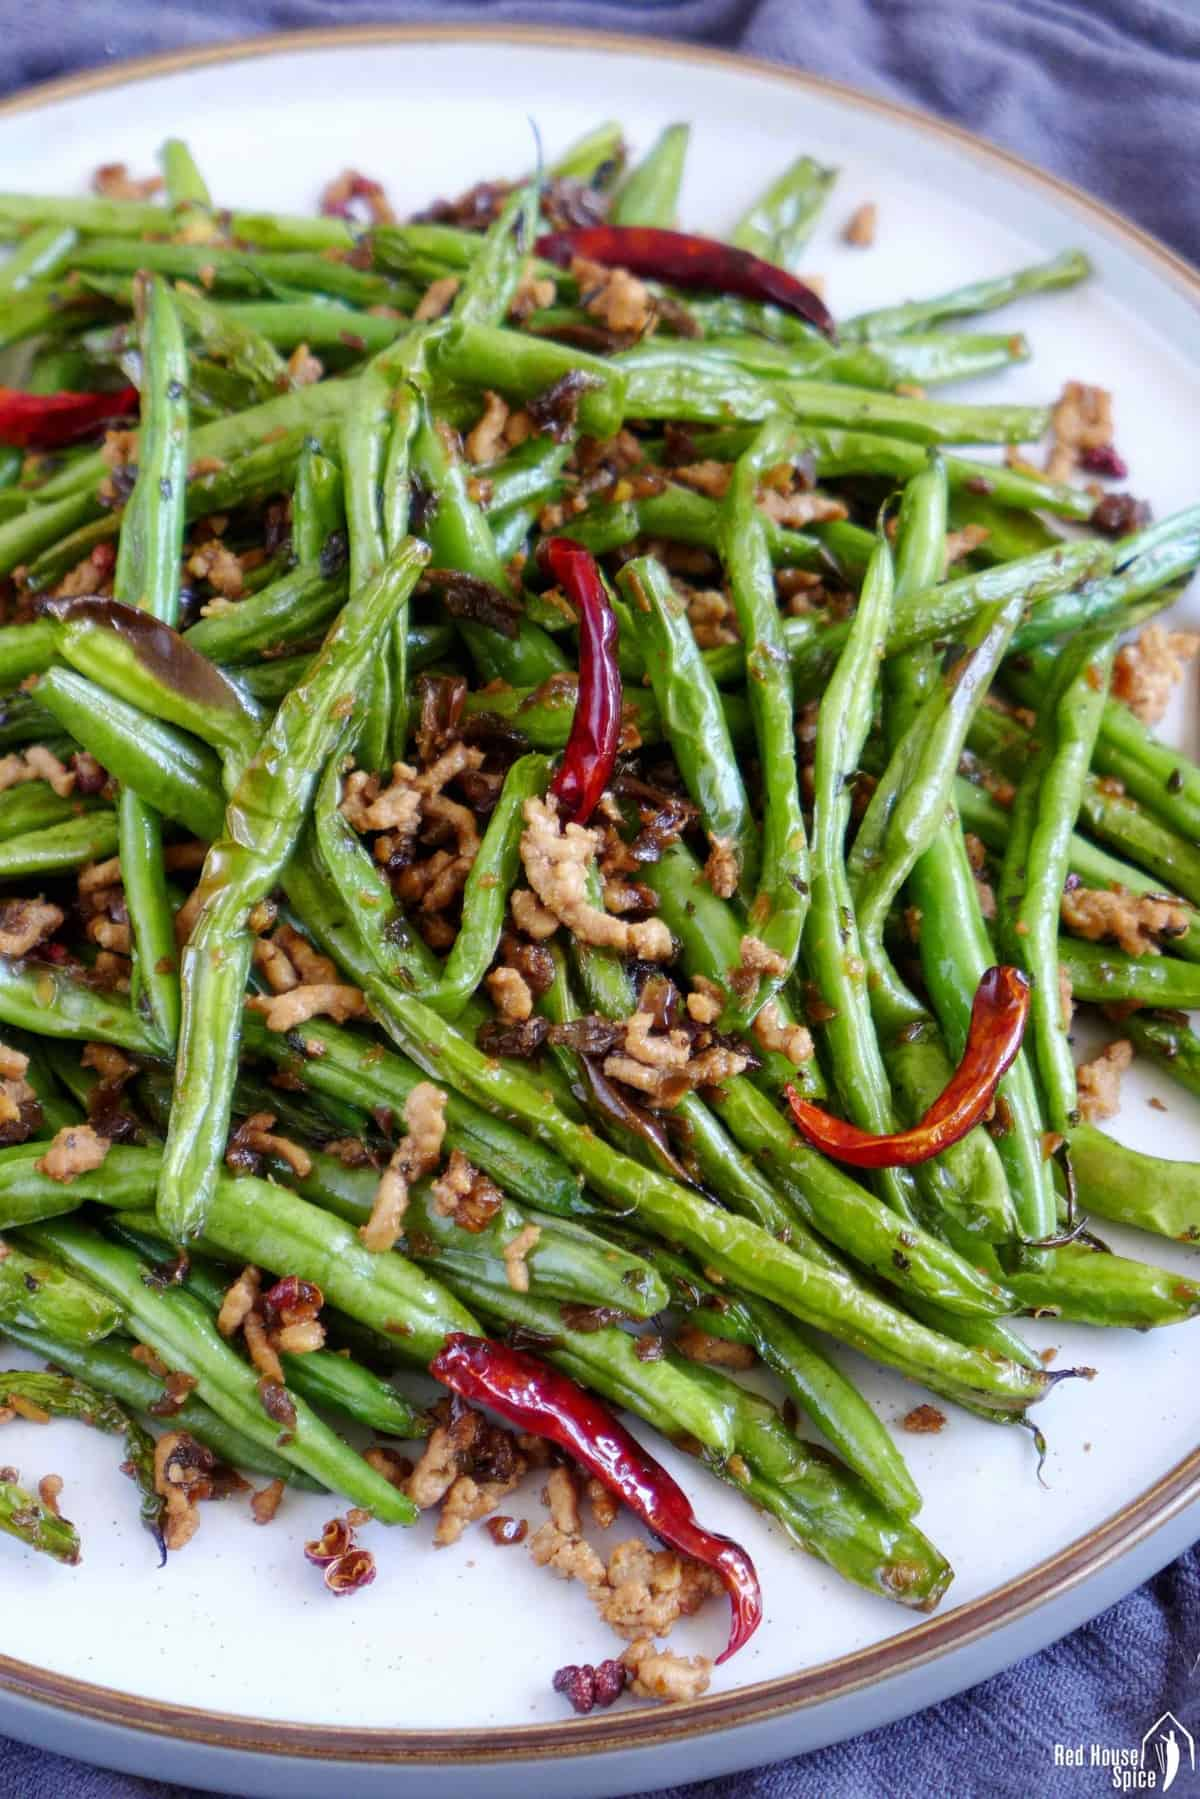 Green beans fried with dried chilies and minced meat.